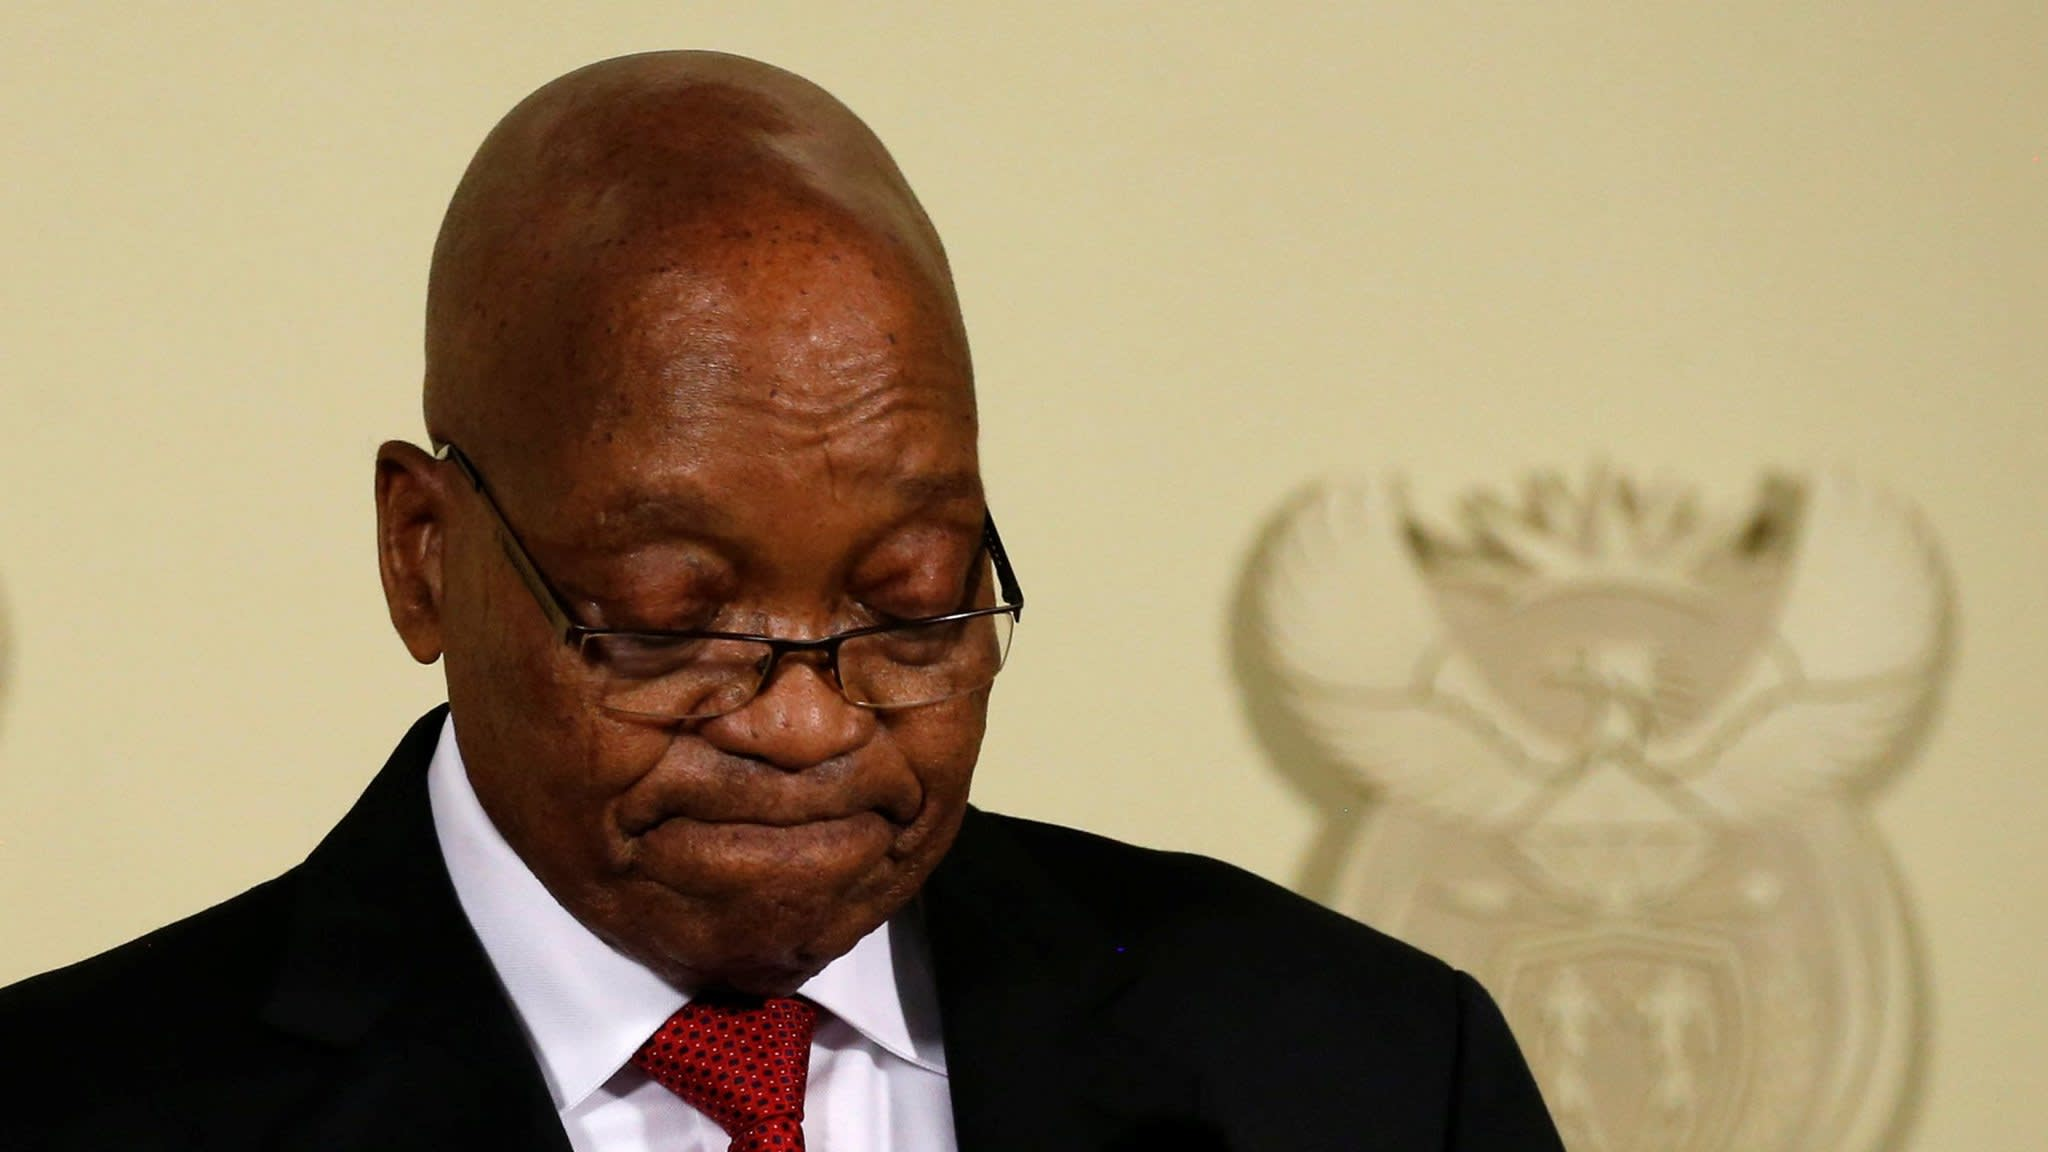 Jacob Zuma quits as president of South Africa